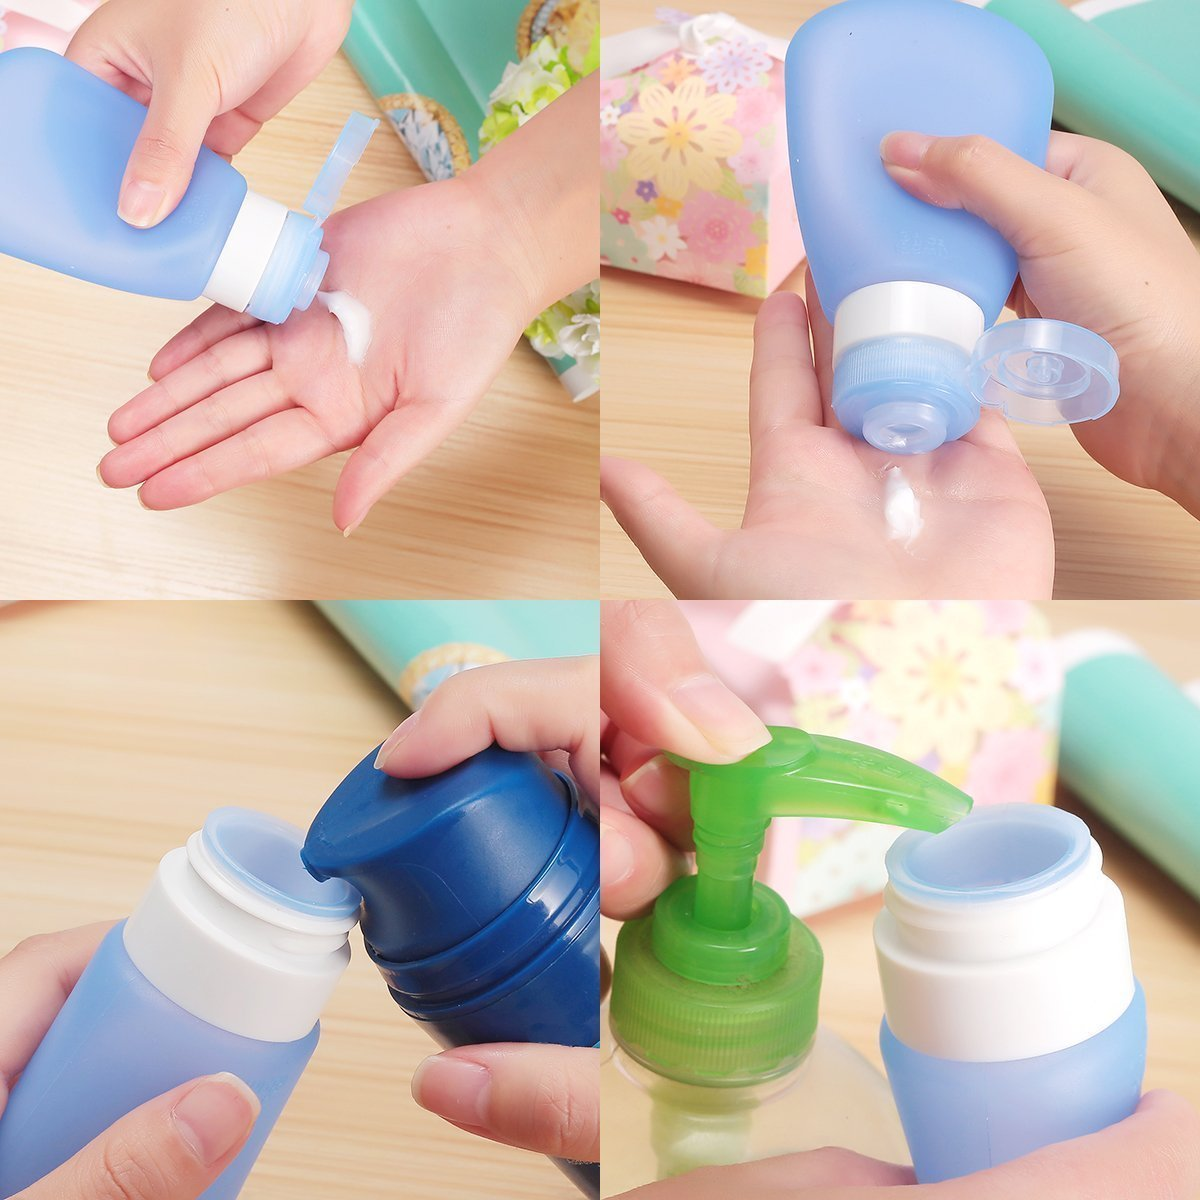 739861b03faa TMISHION Portable Soft Silicone Travel bottles Set,Squeezable and  Refillable Bottle Container for Shampoo, Lotion, Toiletries, Airline  Carry-On(3 OZ, ...